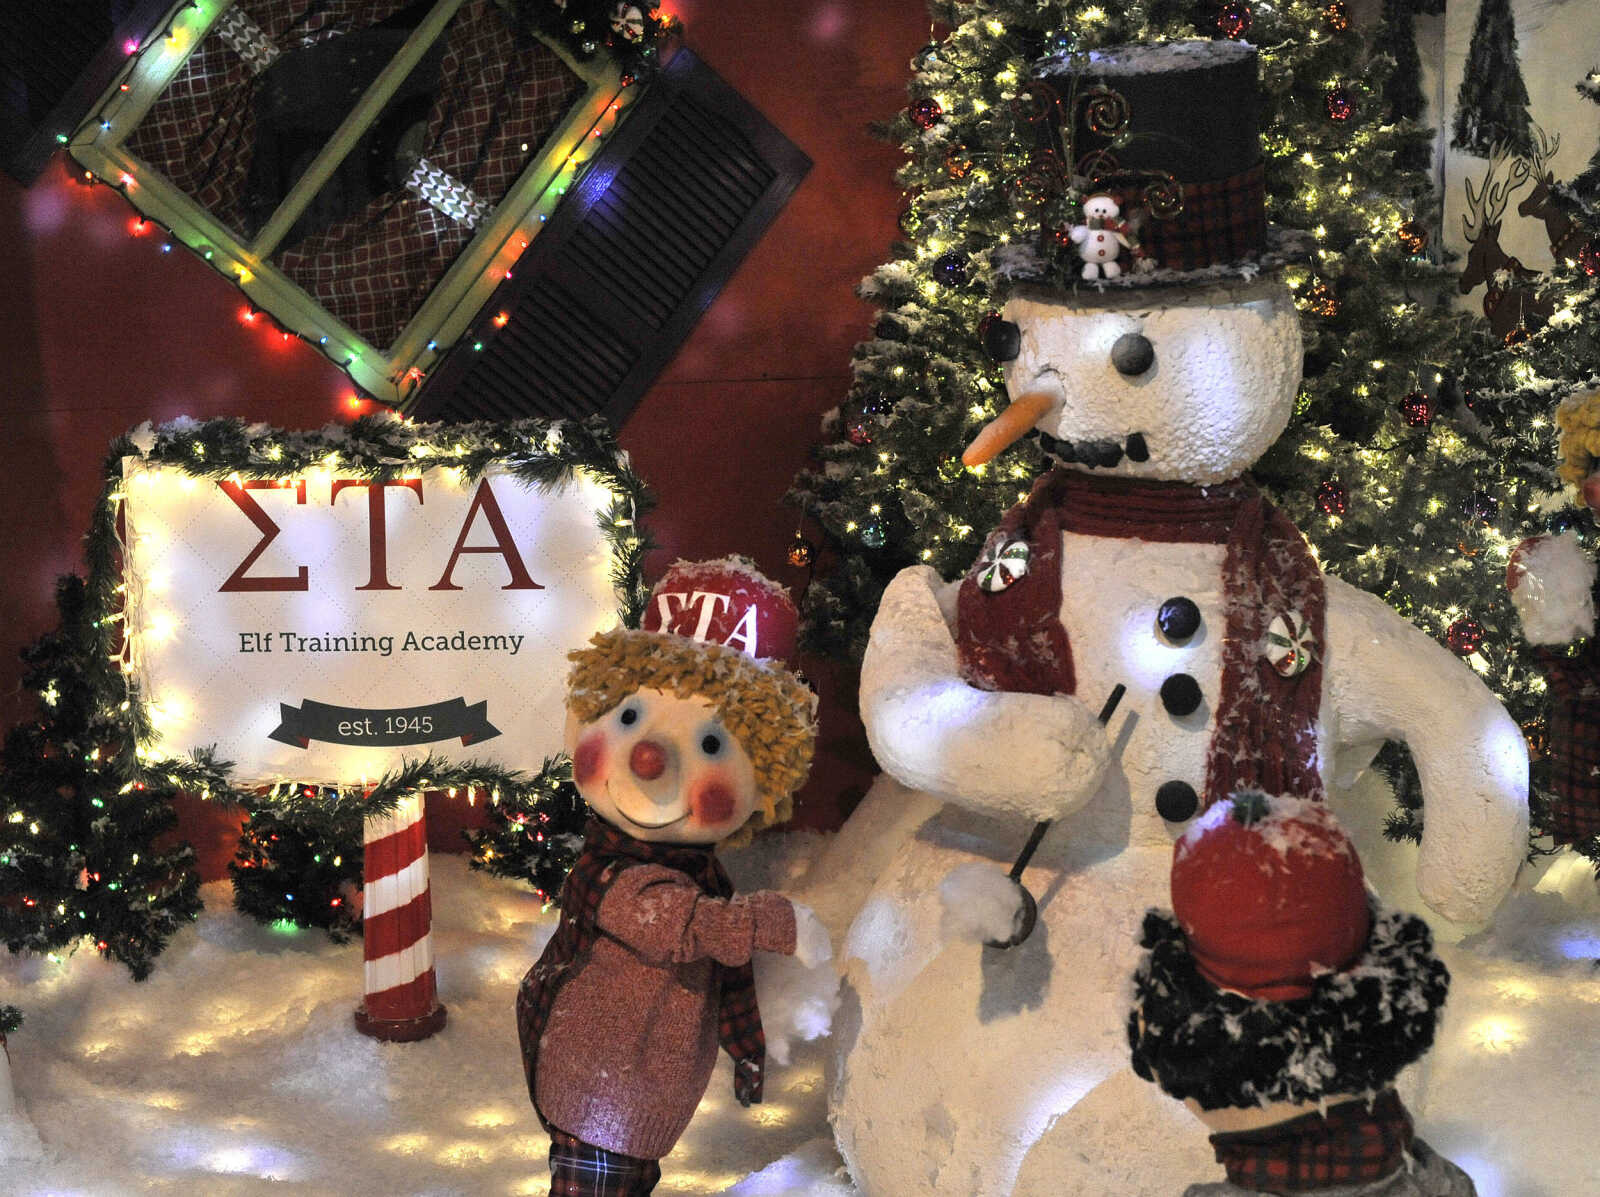 The Elf Training Academy Is Depicted Thursday, Nov. 23, 2017 In The  Christmas Window Display At Hutsonu0027s Fine Furniture In Downtown Cape  Girardeau.